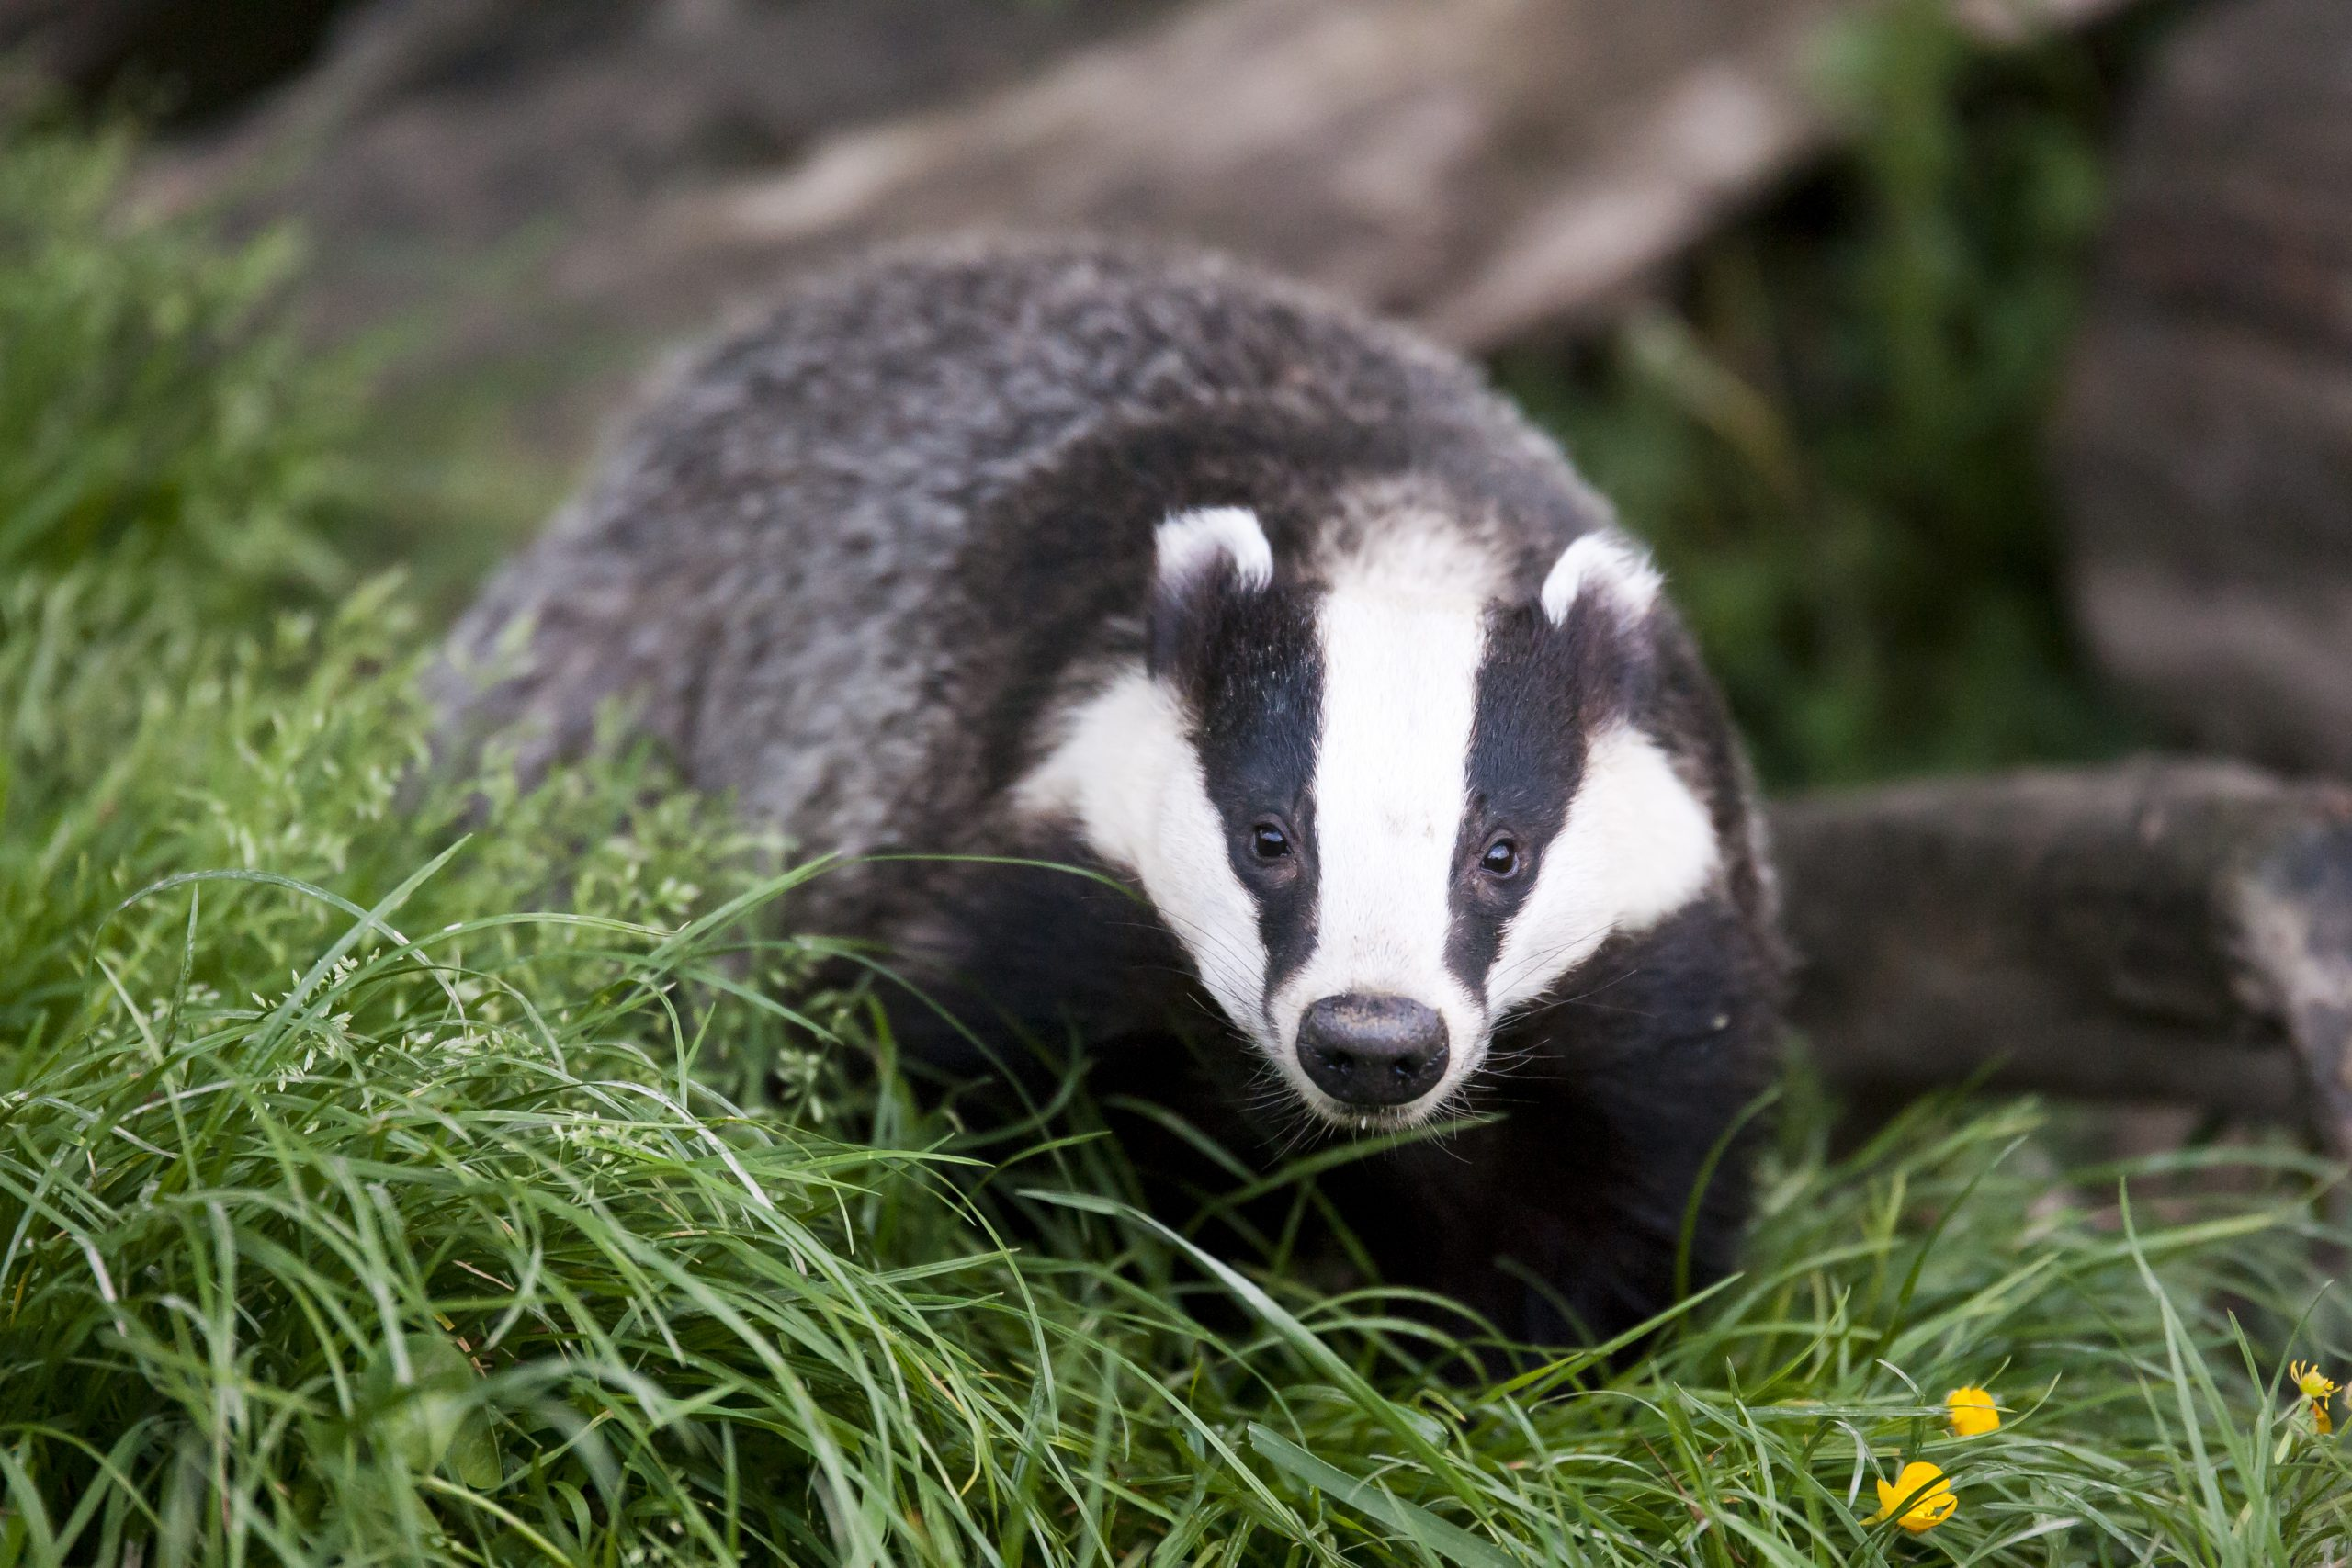 Mixed response to Poots' badger cull TB strategy